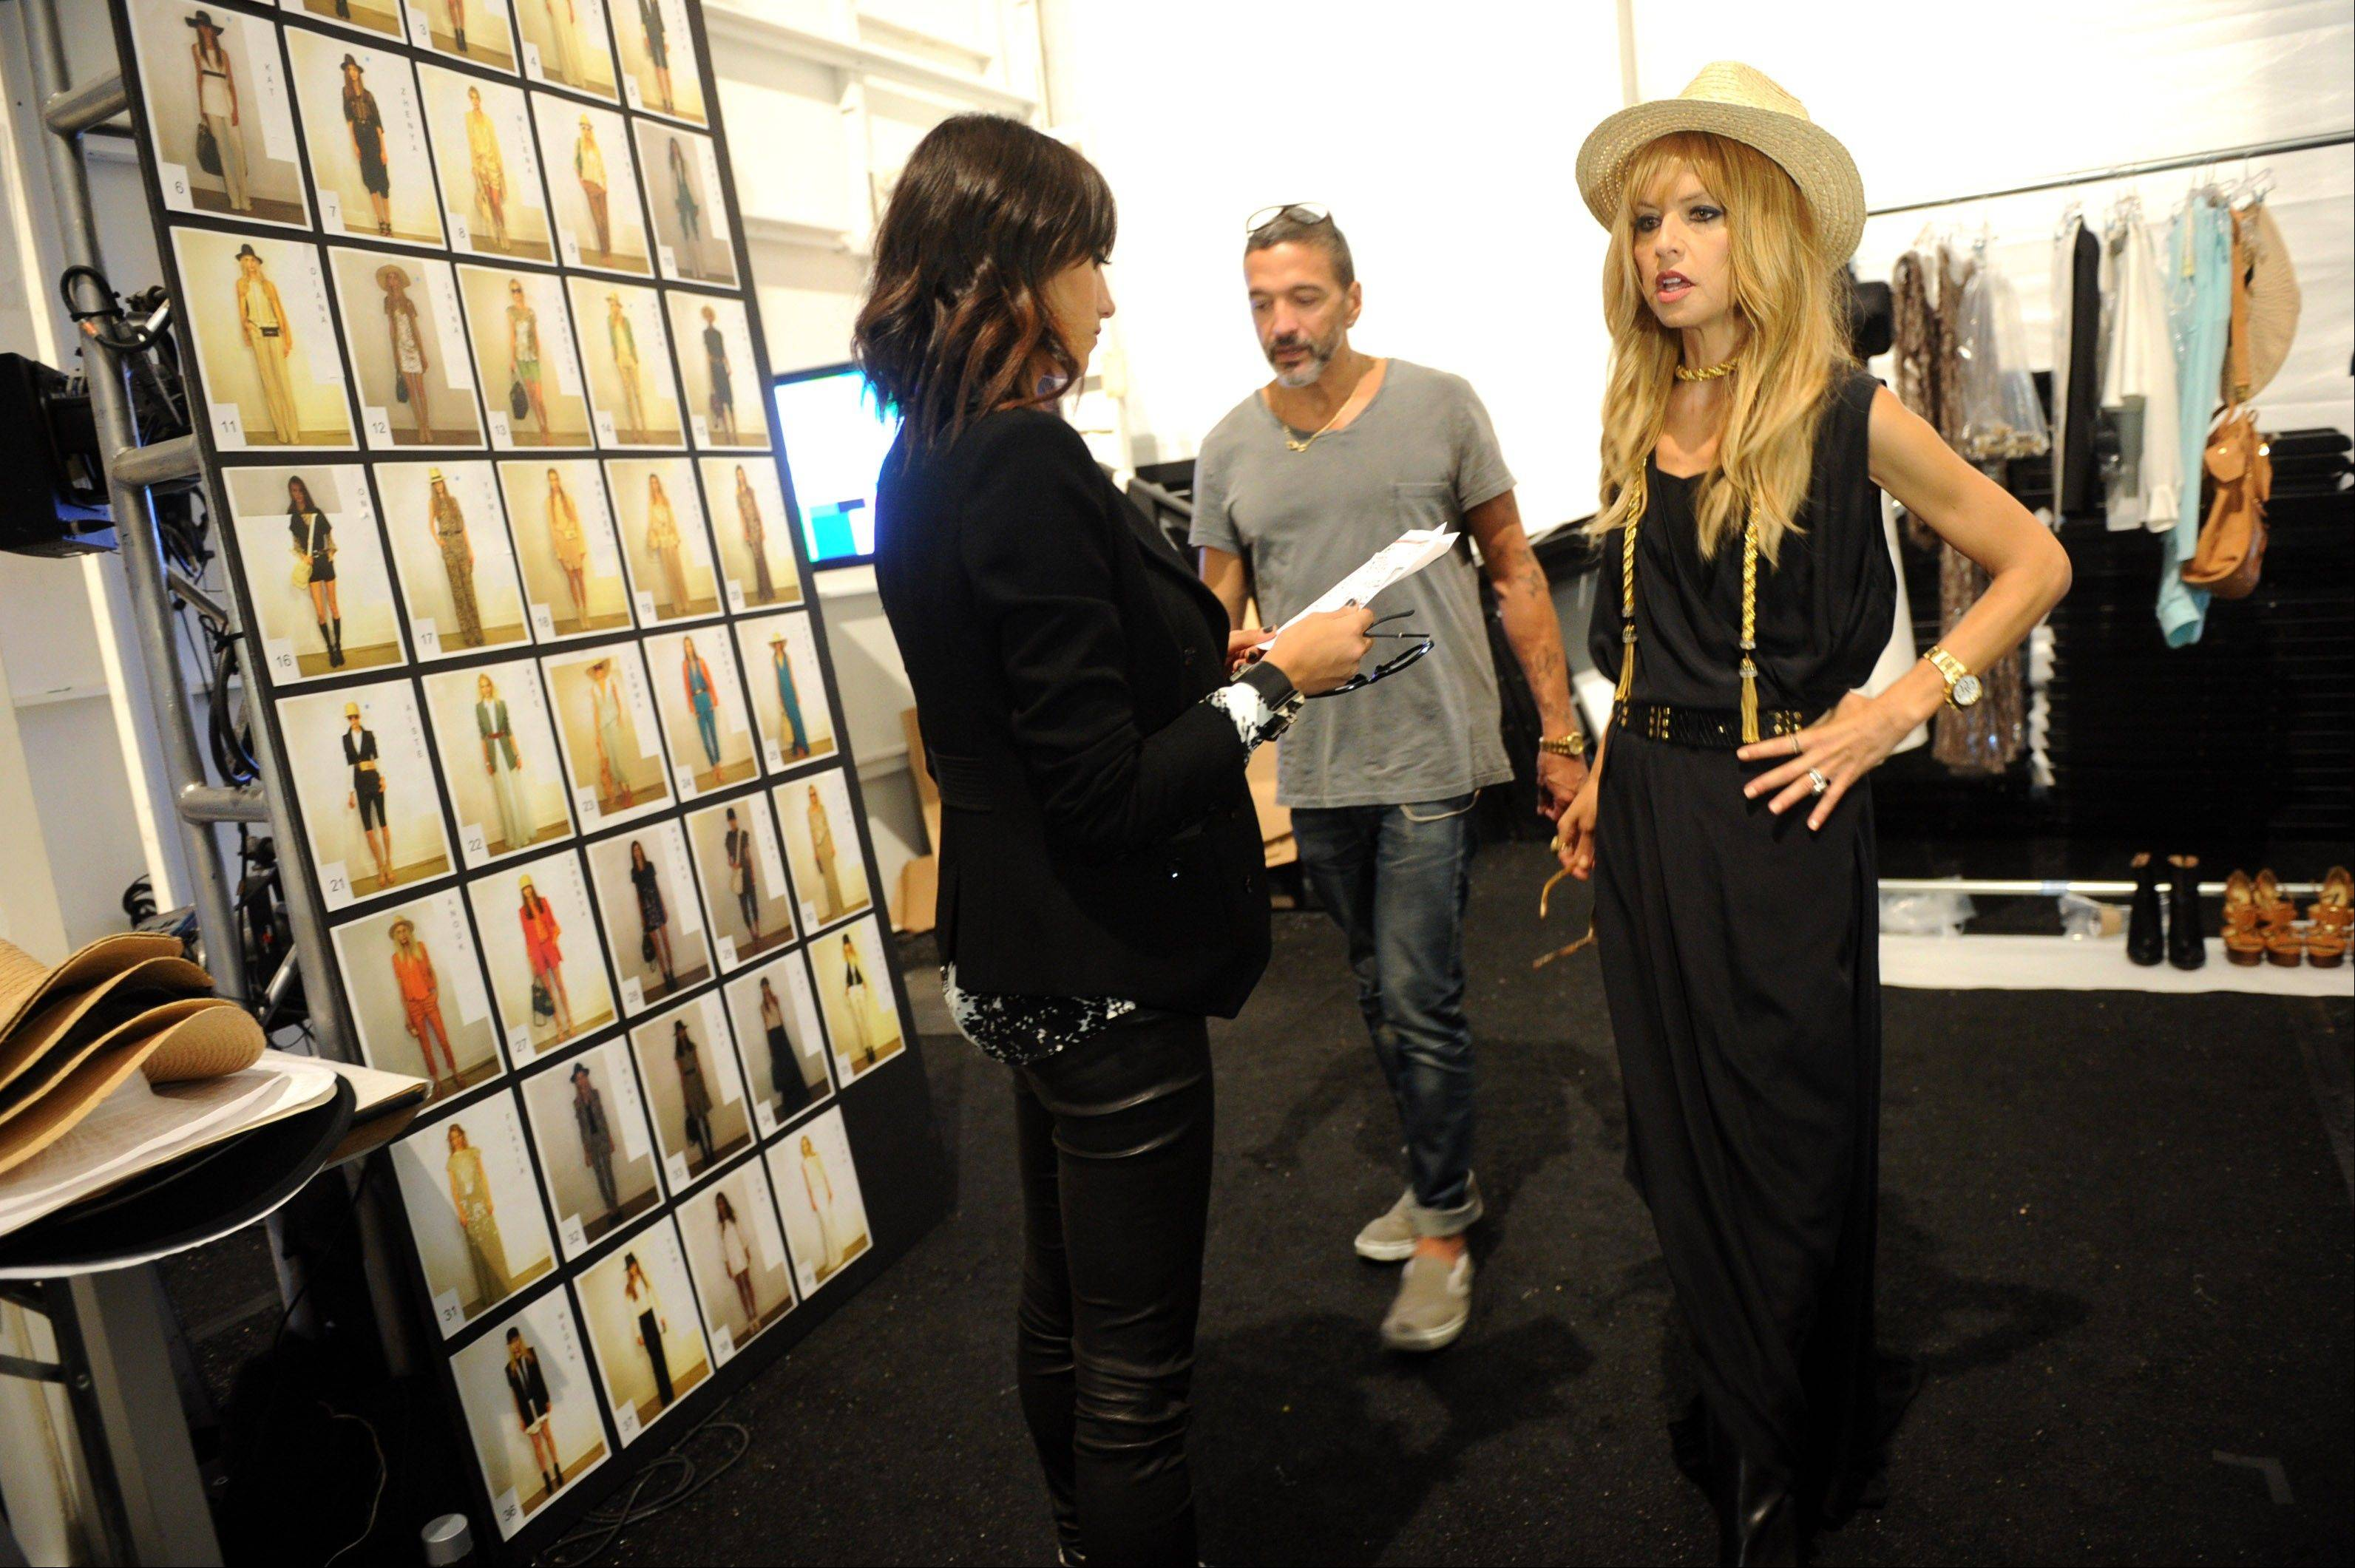 Designer Rachel Zoe, right, is seen backstage before her spring 2013 collection is shown at Fashion Week, Wednesday, Sept. 12, 2012, in New York.